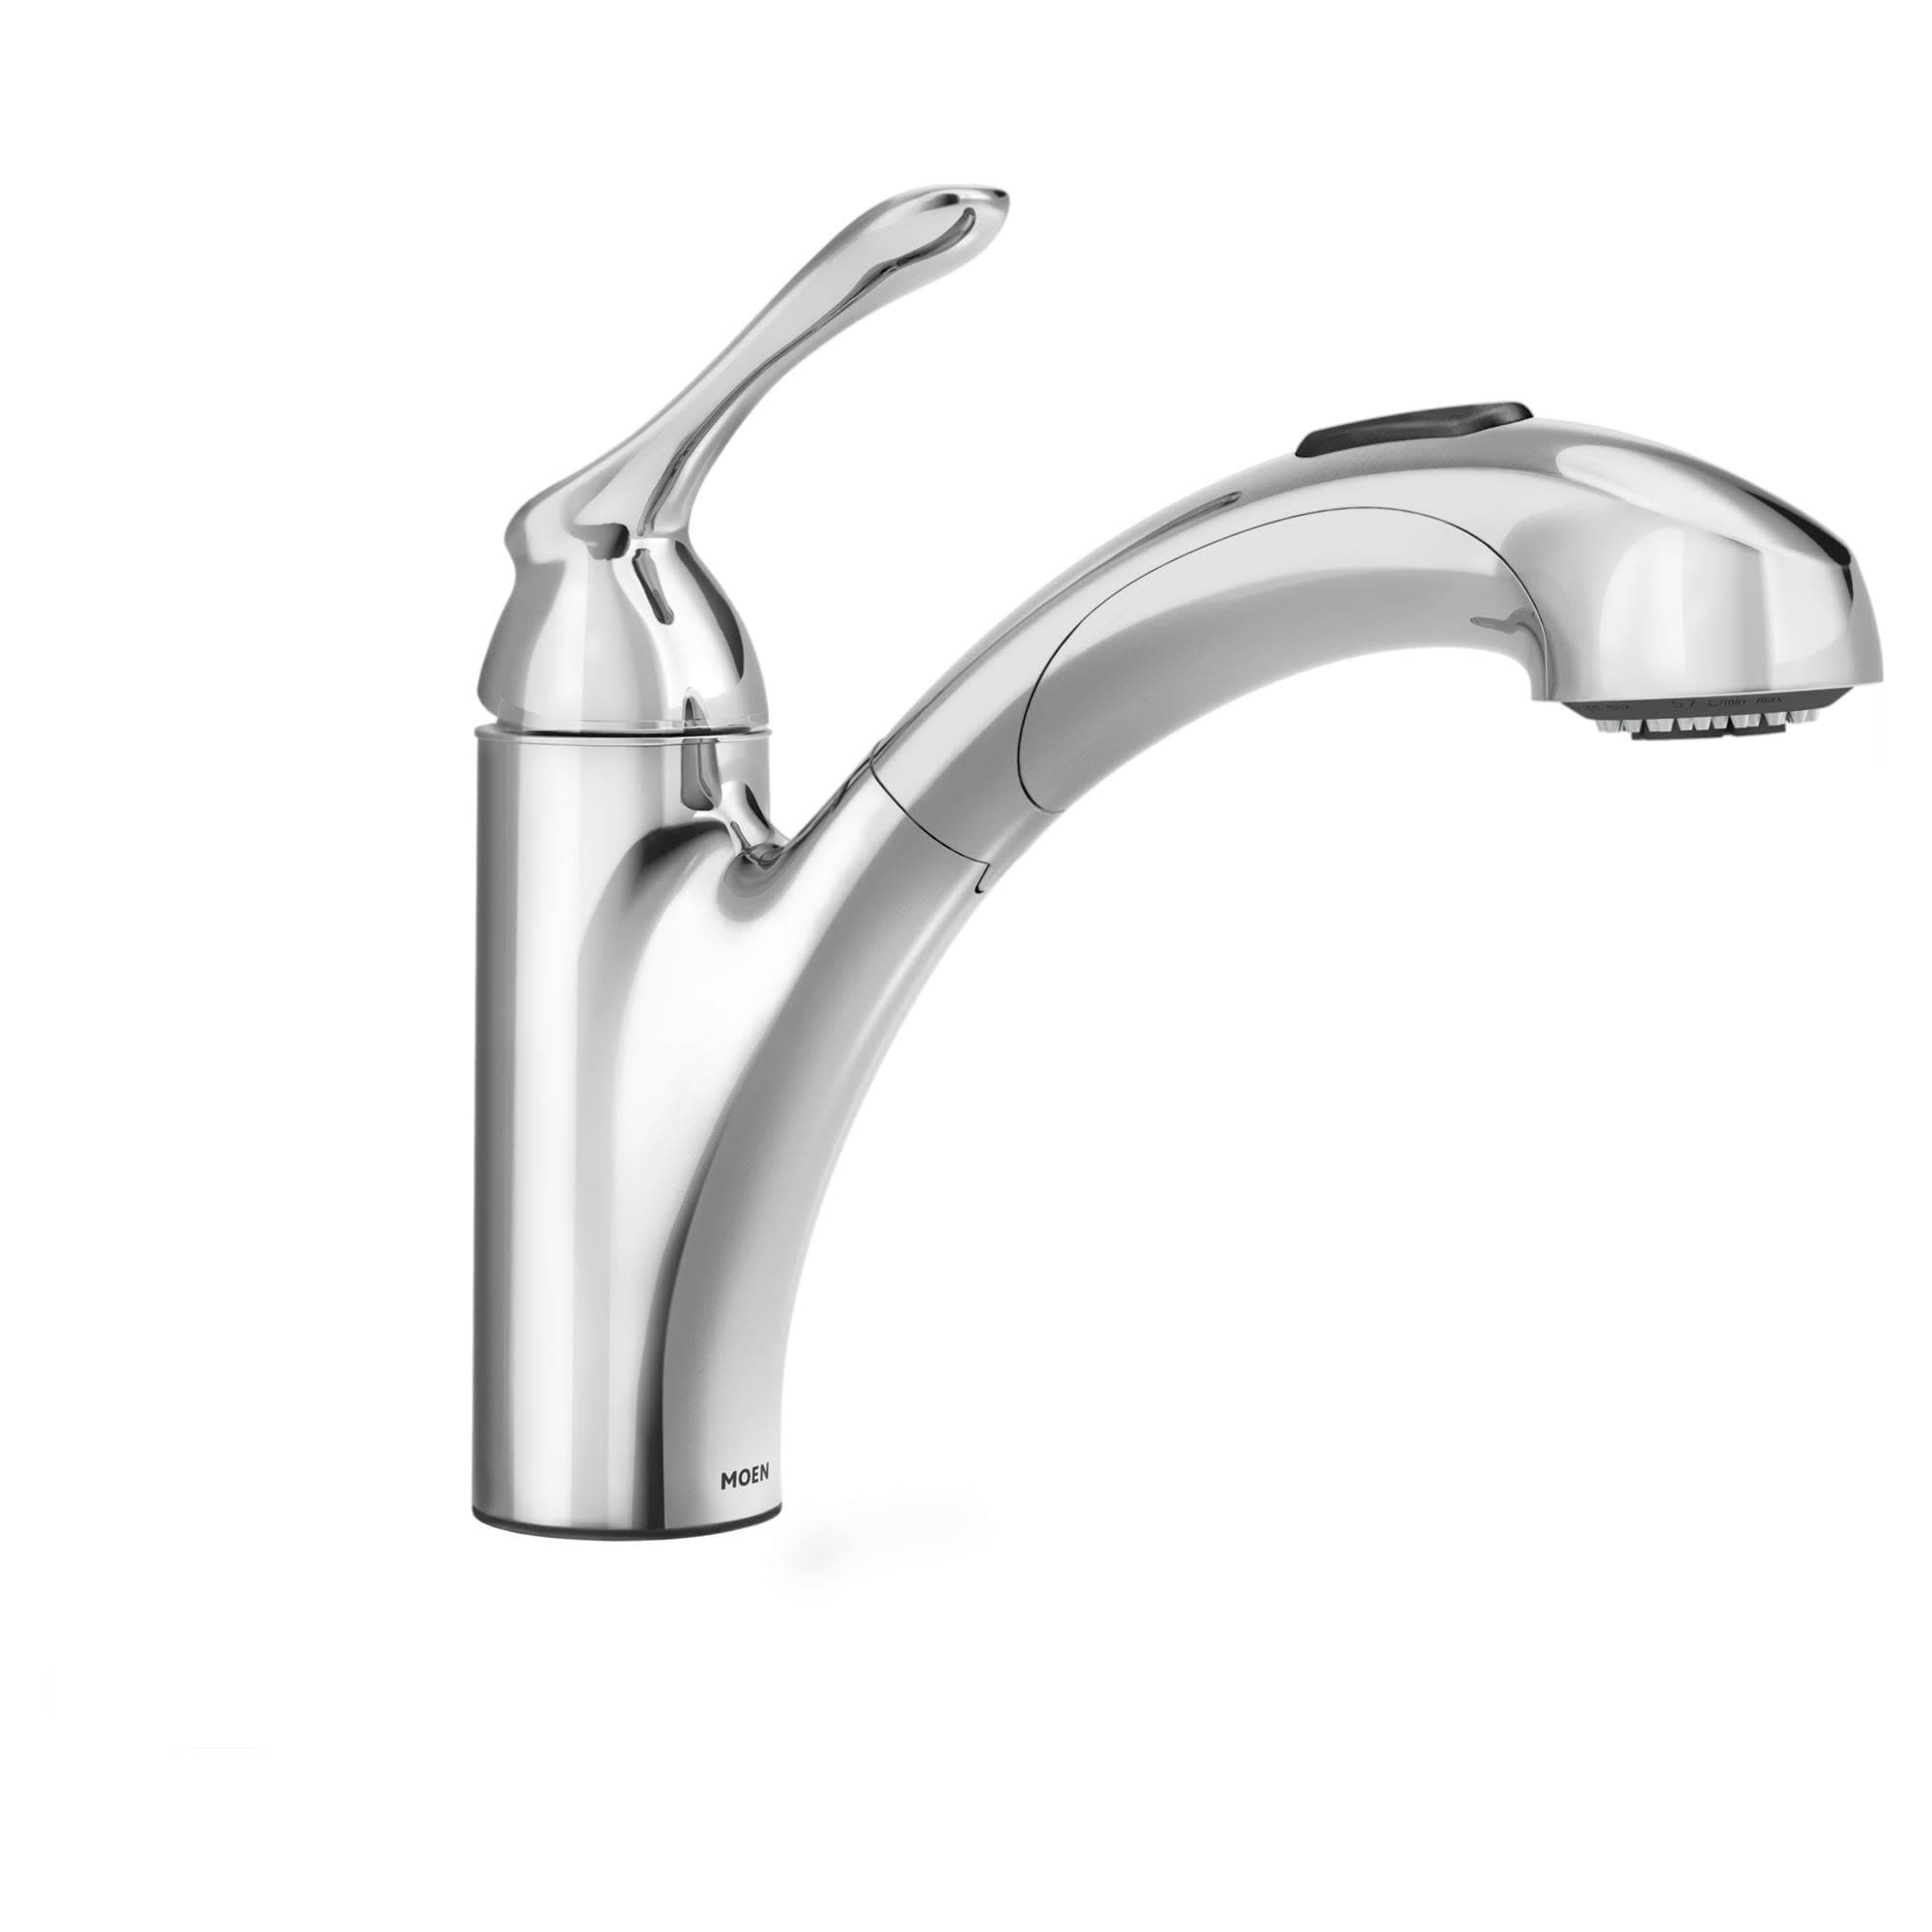 Moen 87017 Pullout Spray Kitchen Faucet From The Banbury Collection